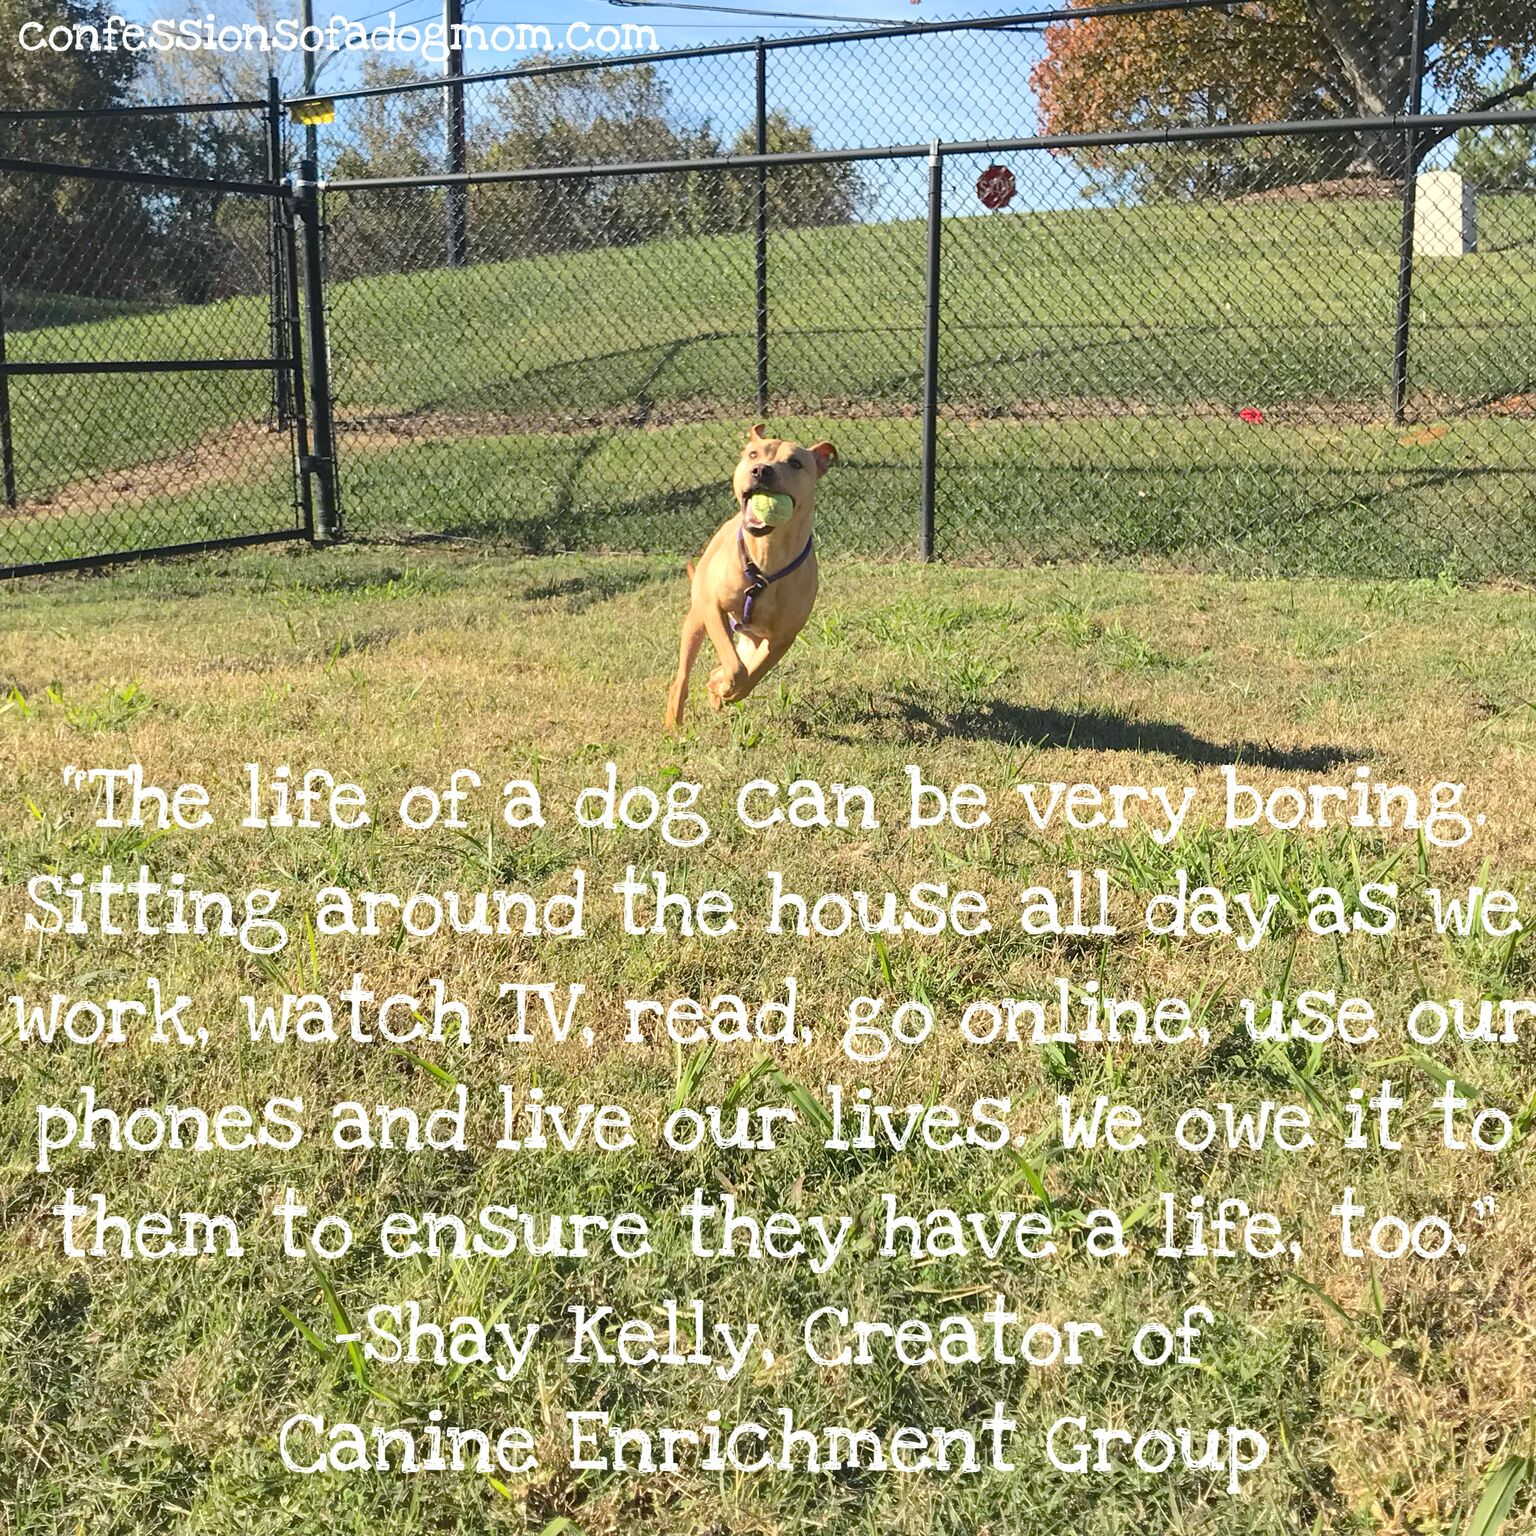 """""""The life of a dog can be very boring. Sitting around the house all day as we work, watch TV, read, go online, use our phones, and live our lives. We owe it to them to ensure they have a life too."""""""